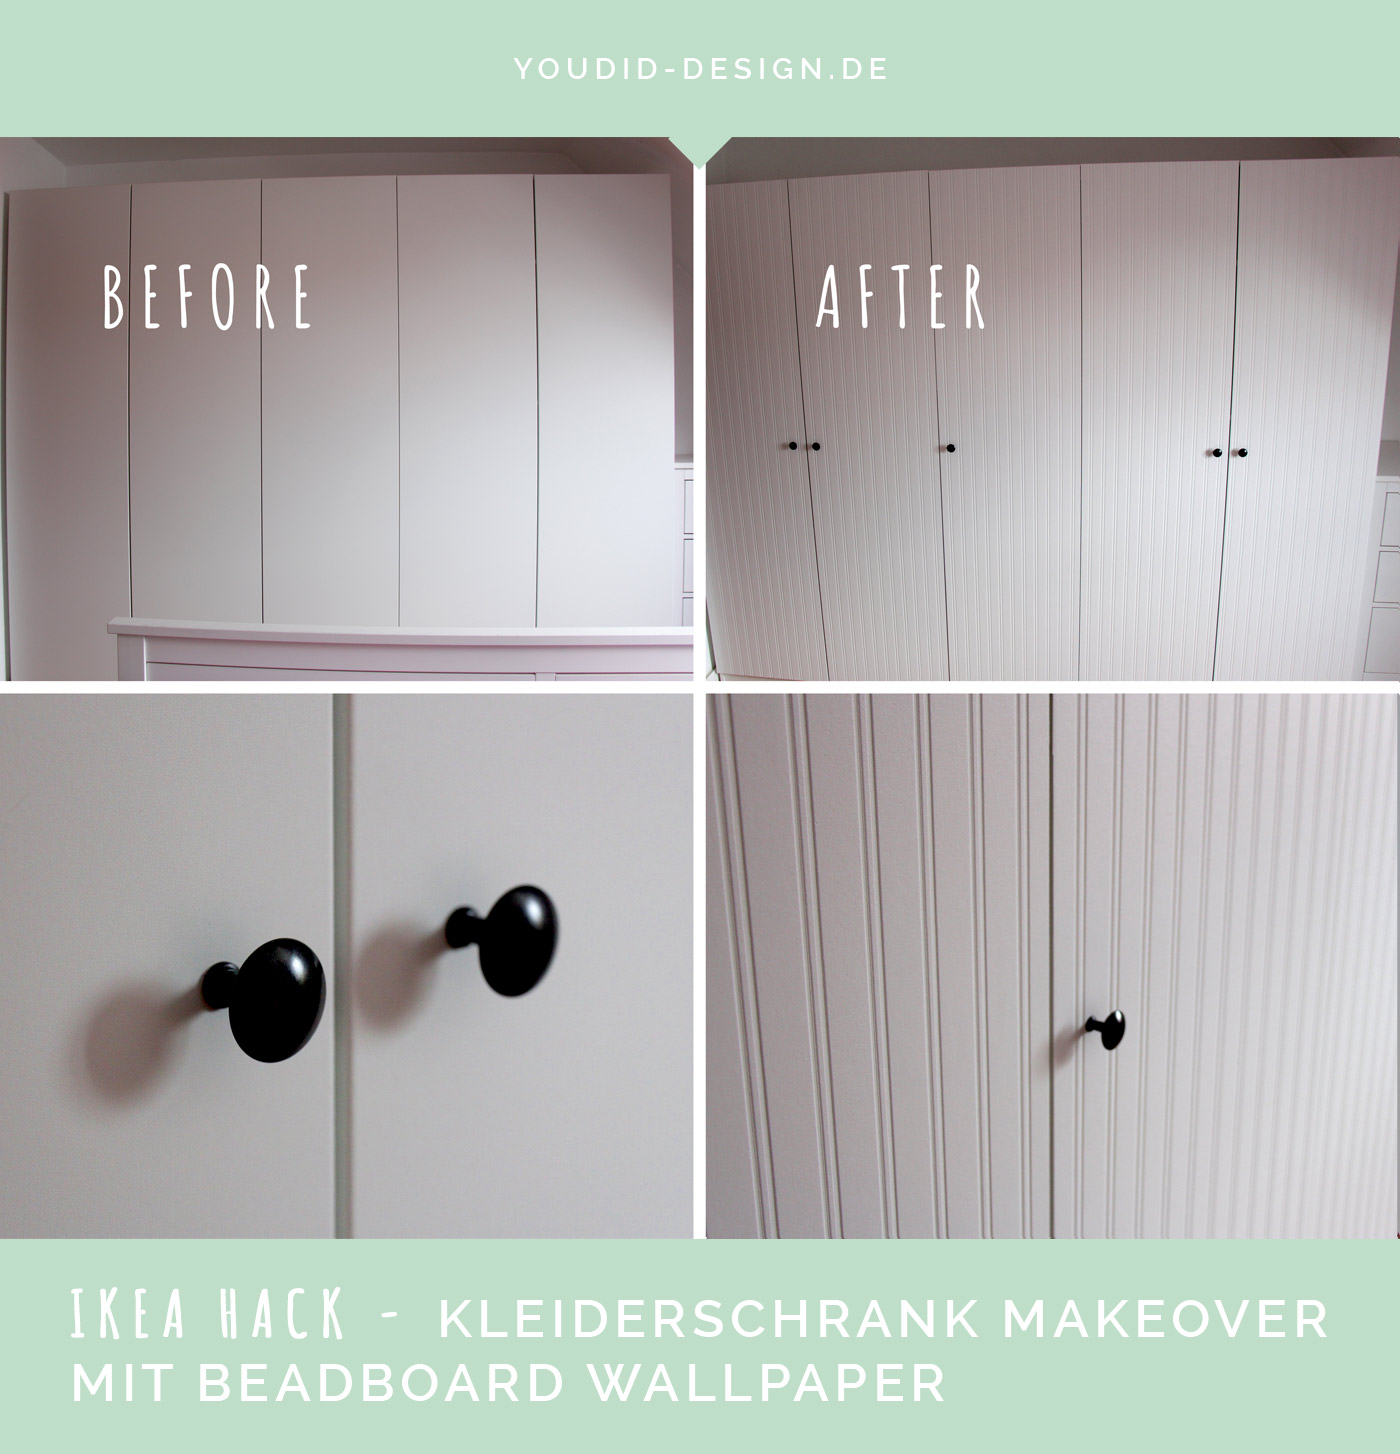 ikea hack pax kleiderschrank makeover mit beadboard wallpaper. Black Bedroom Furniture Sets. Home Design Ideas